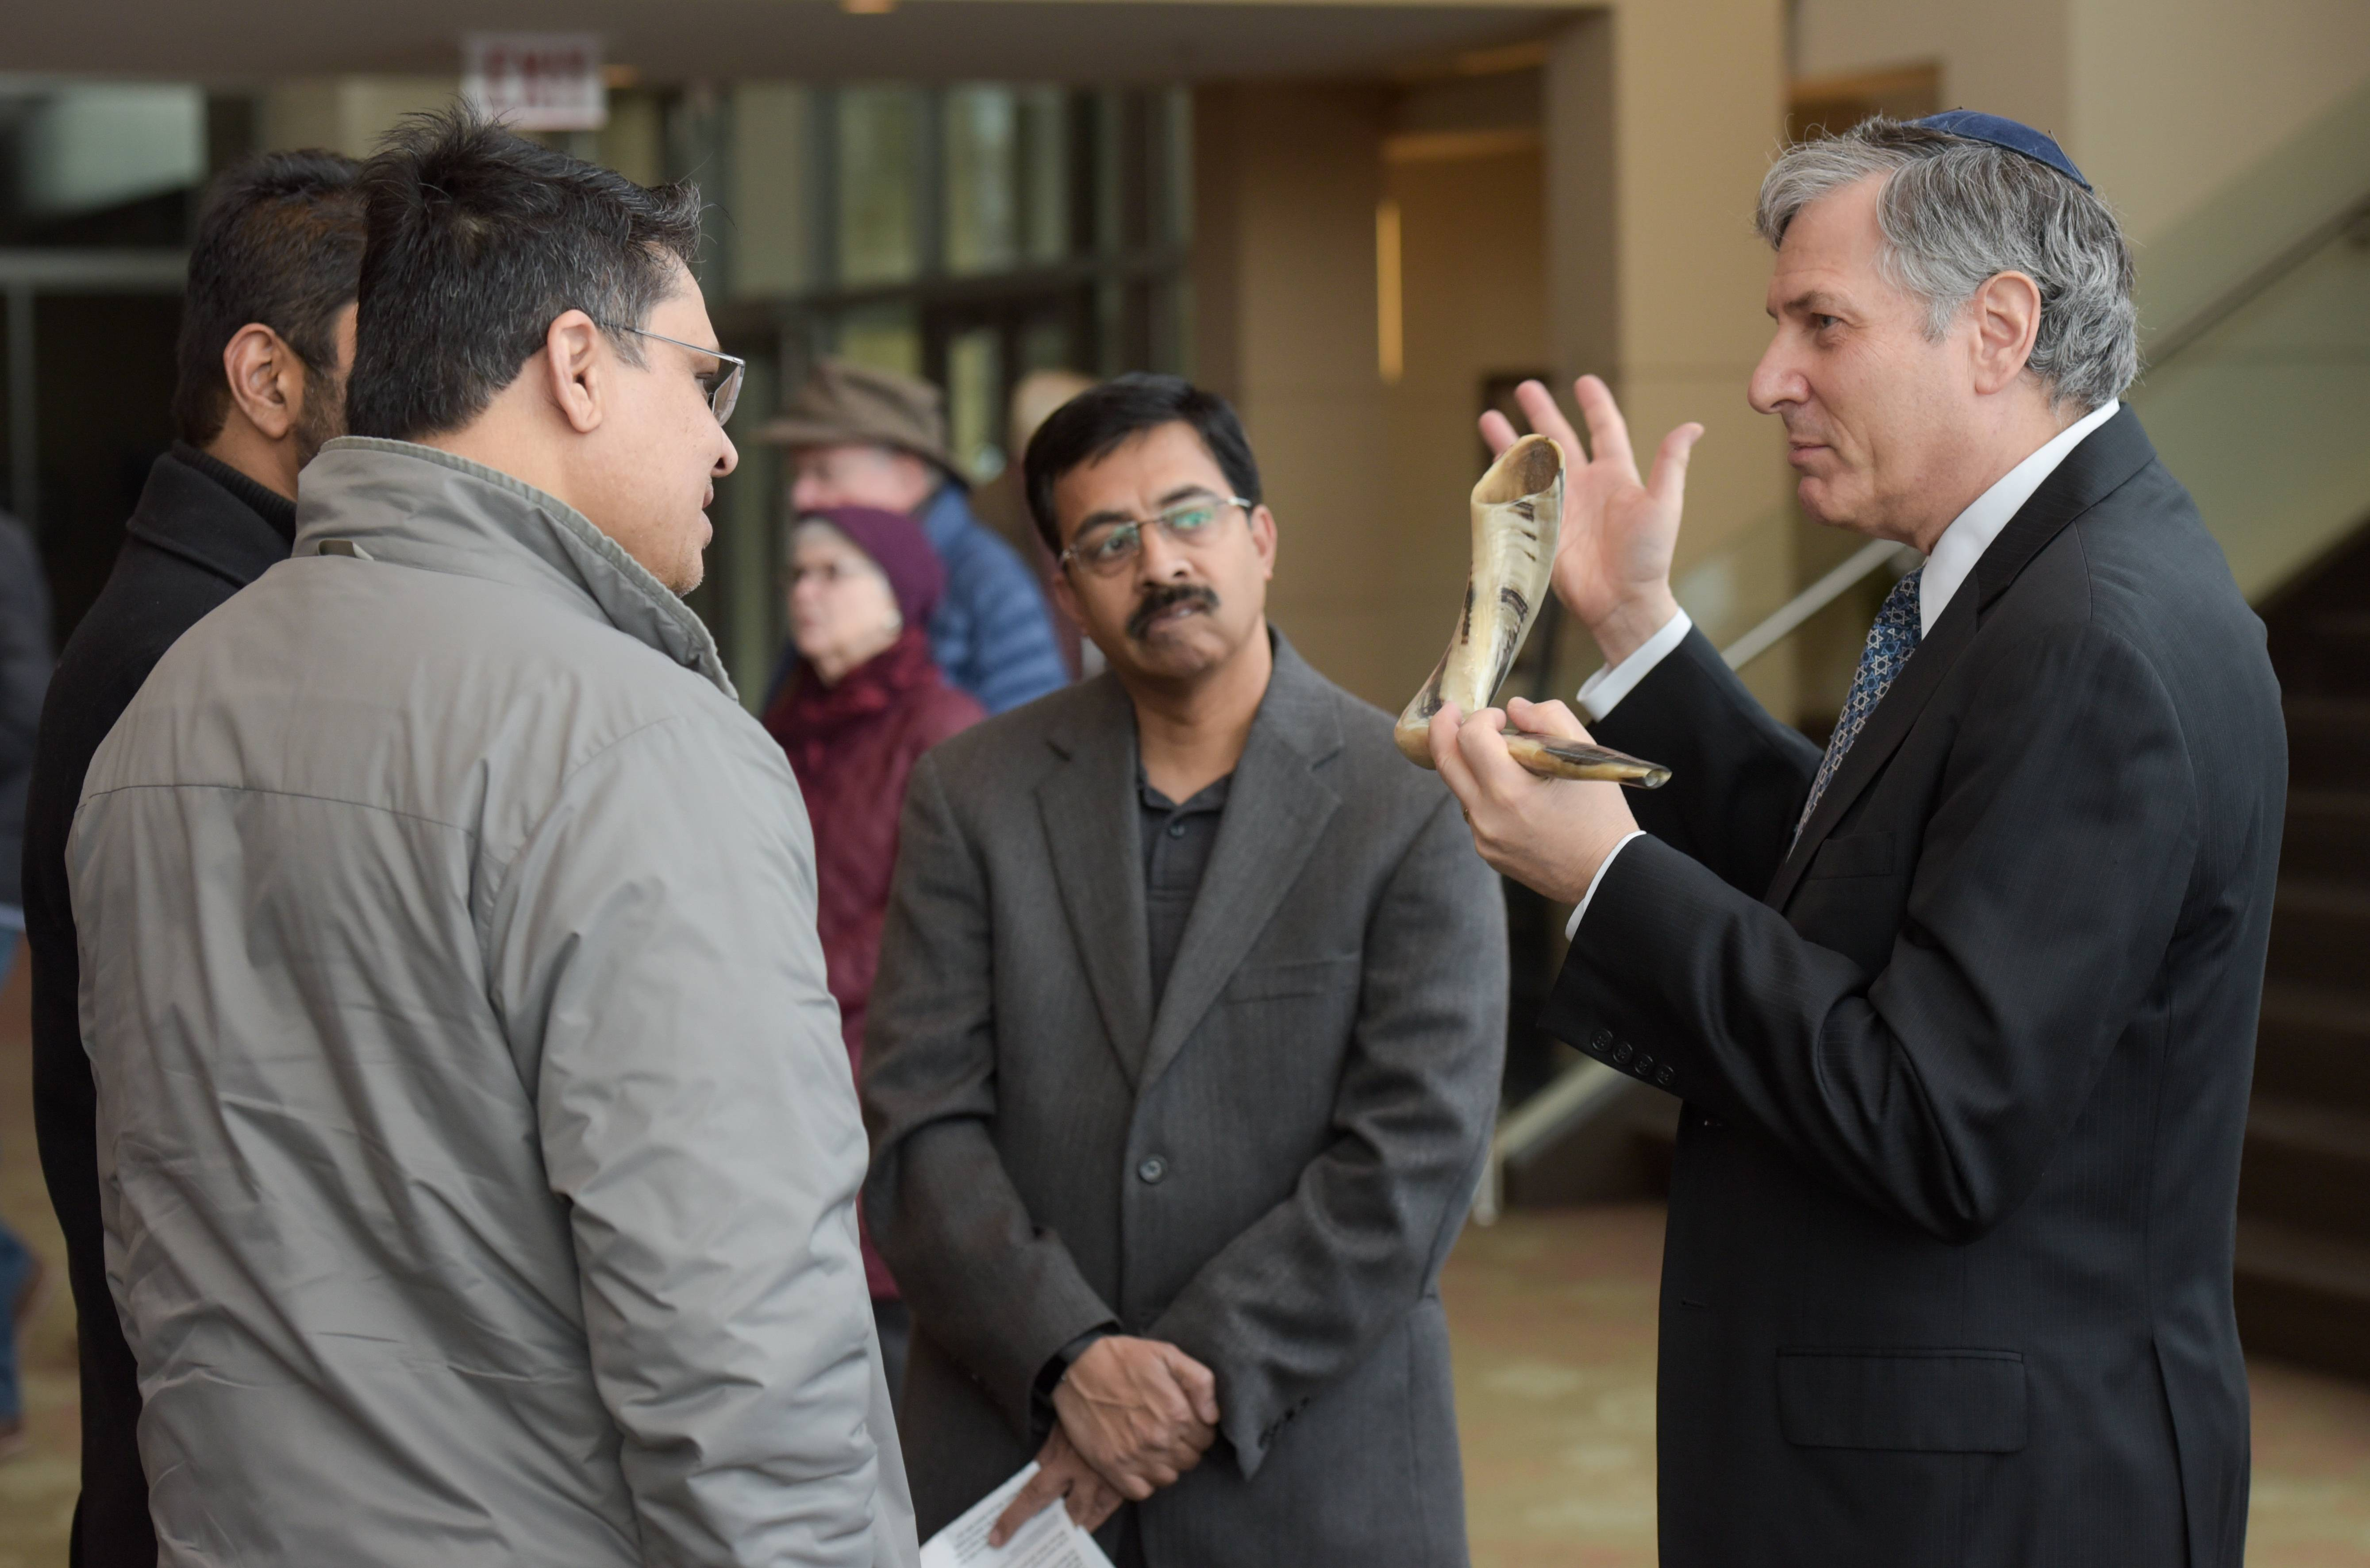 Sami Siddiqui, Shafeek Abooubaker and Syed Abedi of the Islamic Center of Naperville talk Sunday with Bernie Newman from Congregation Beth Shalom during the 13th annual World Peace Day Interfaith Prayer Service at North Central College's Wentz Concert Hall.